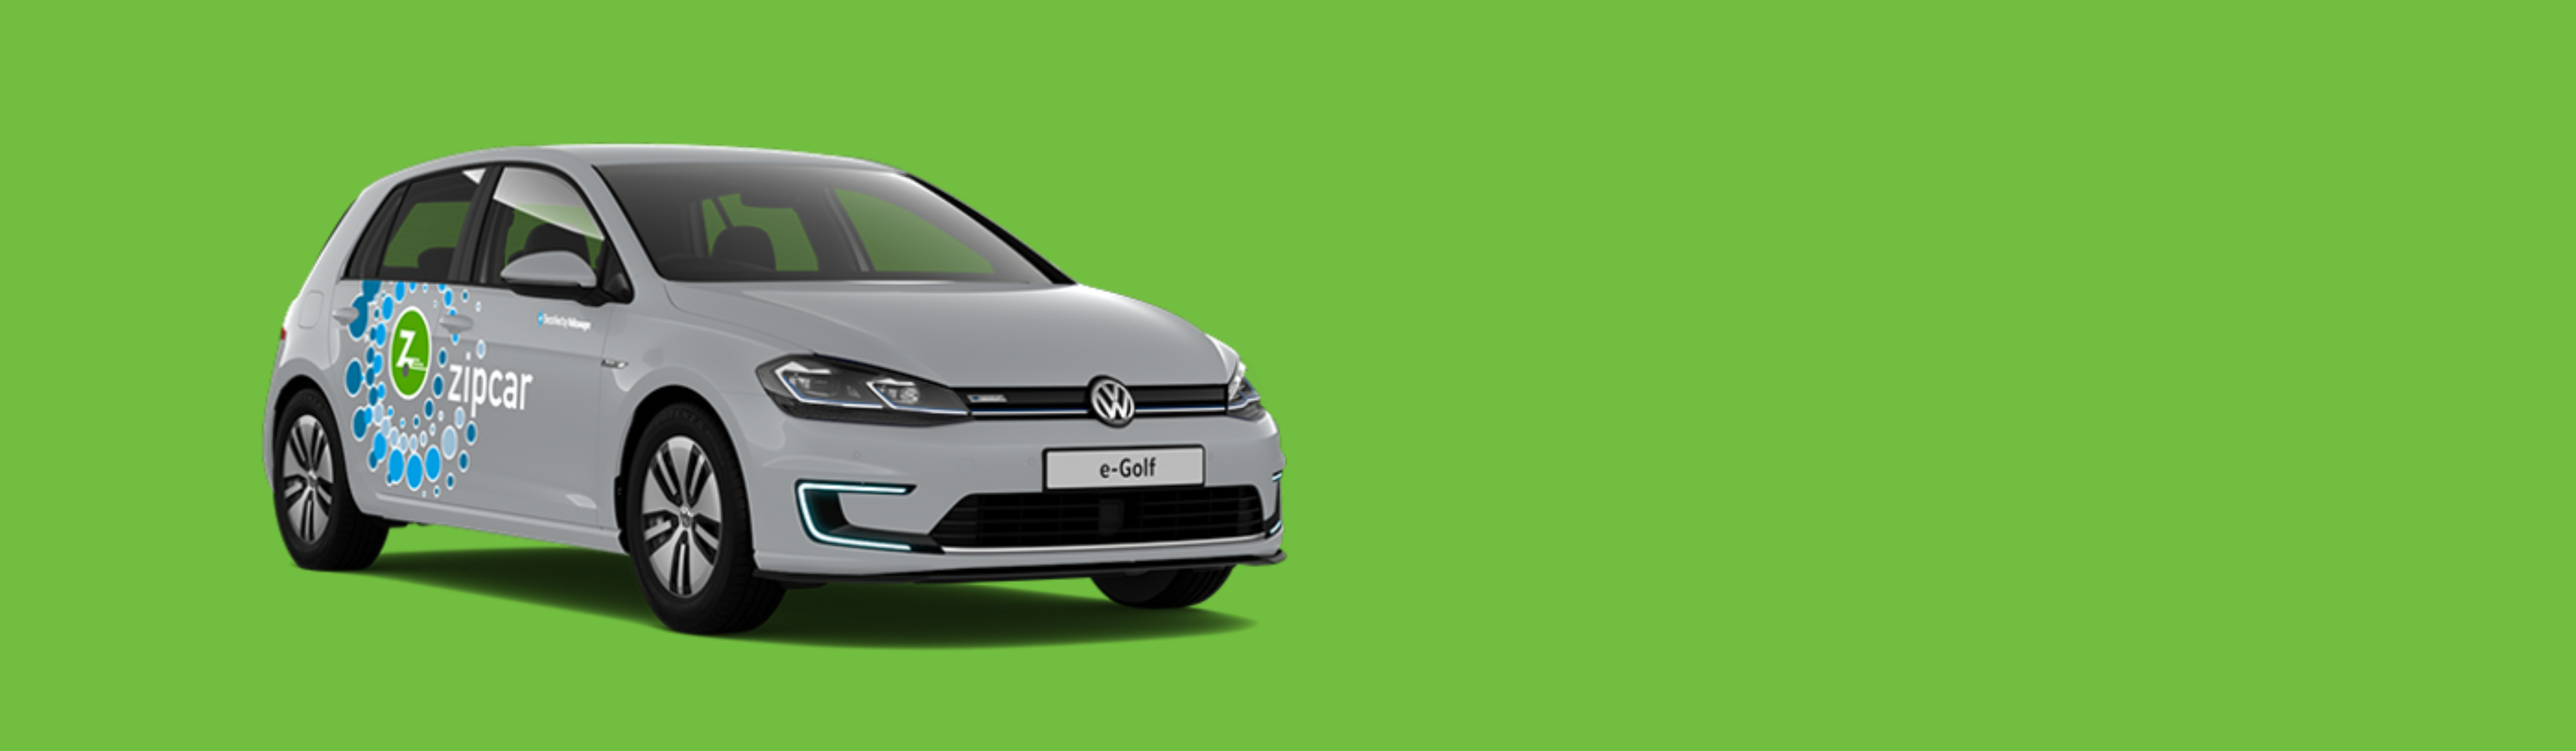 zipcar vw egolf